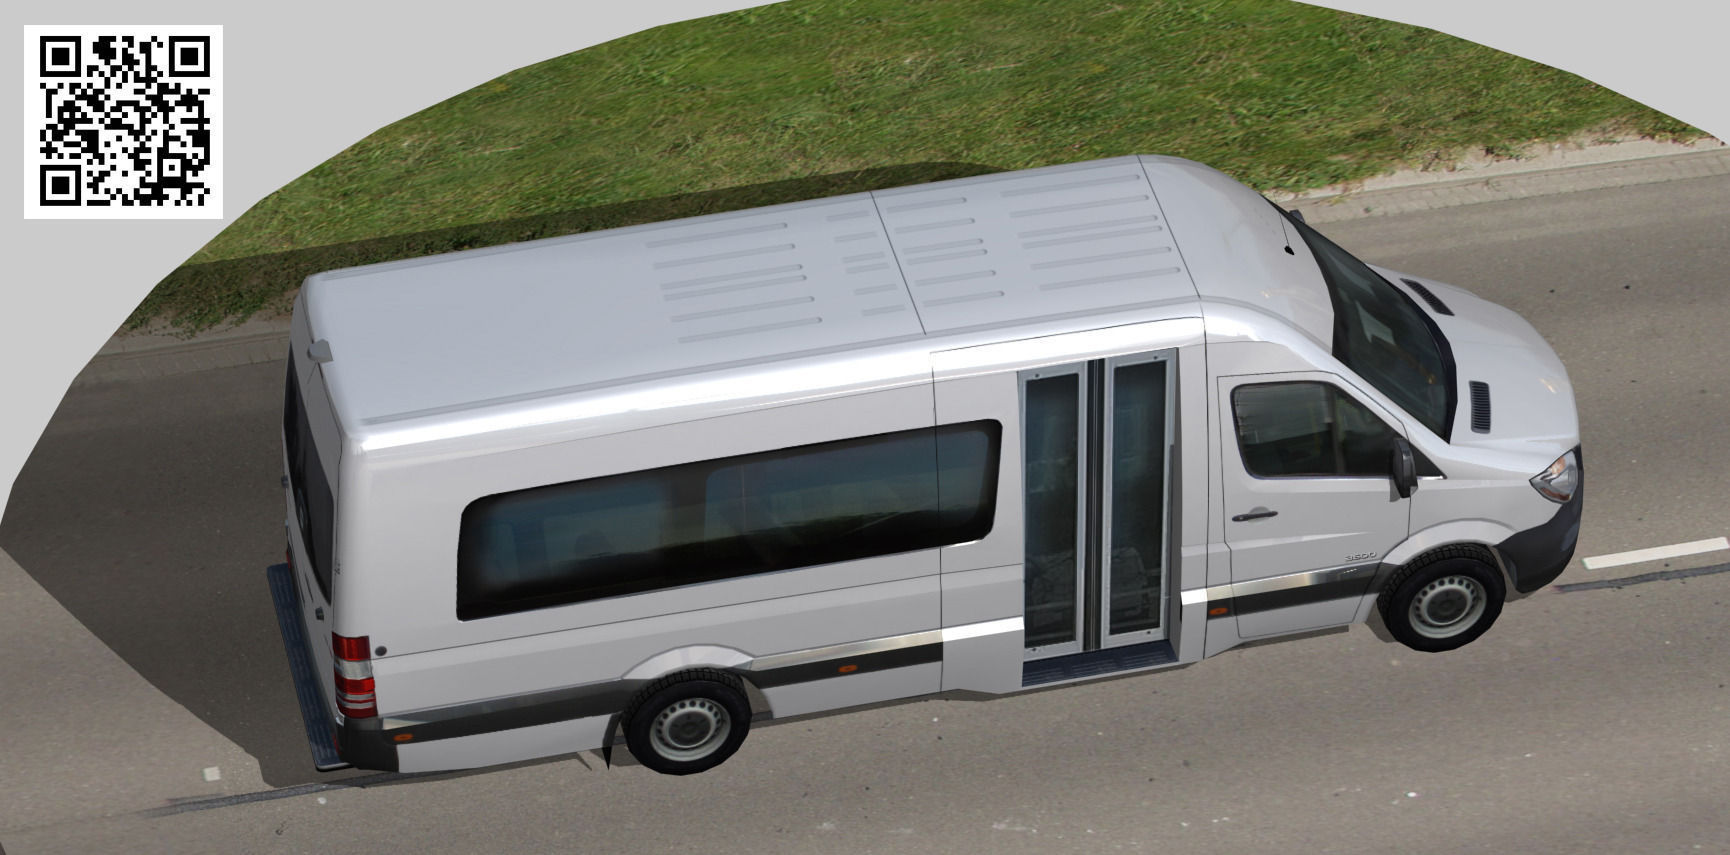 freightliner sprinter minibus 3500 3d model low poly rigged max 4